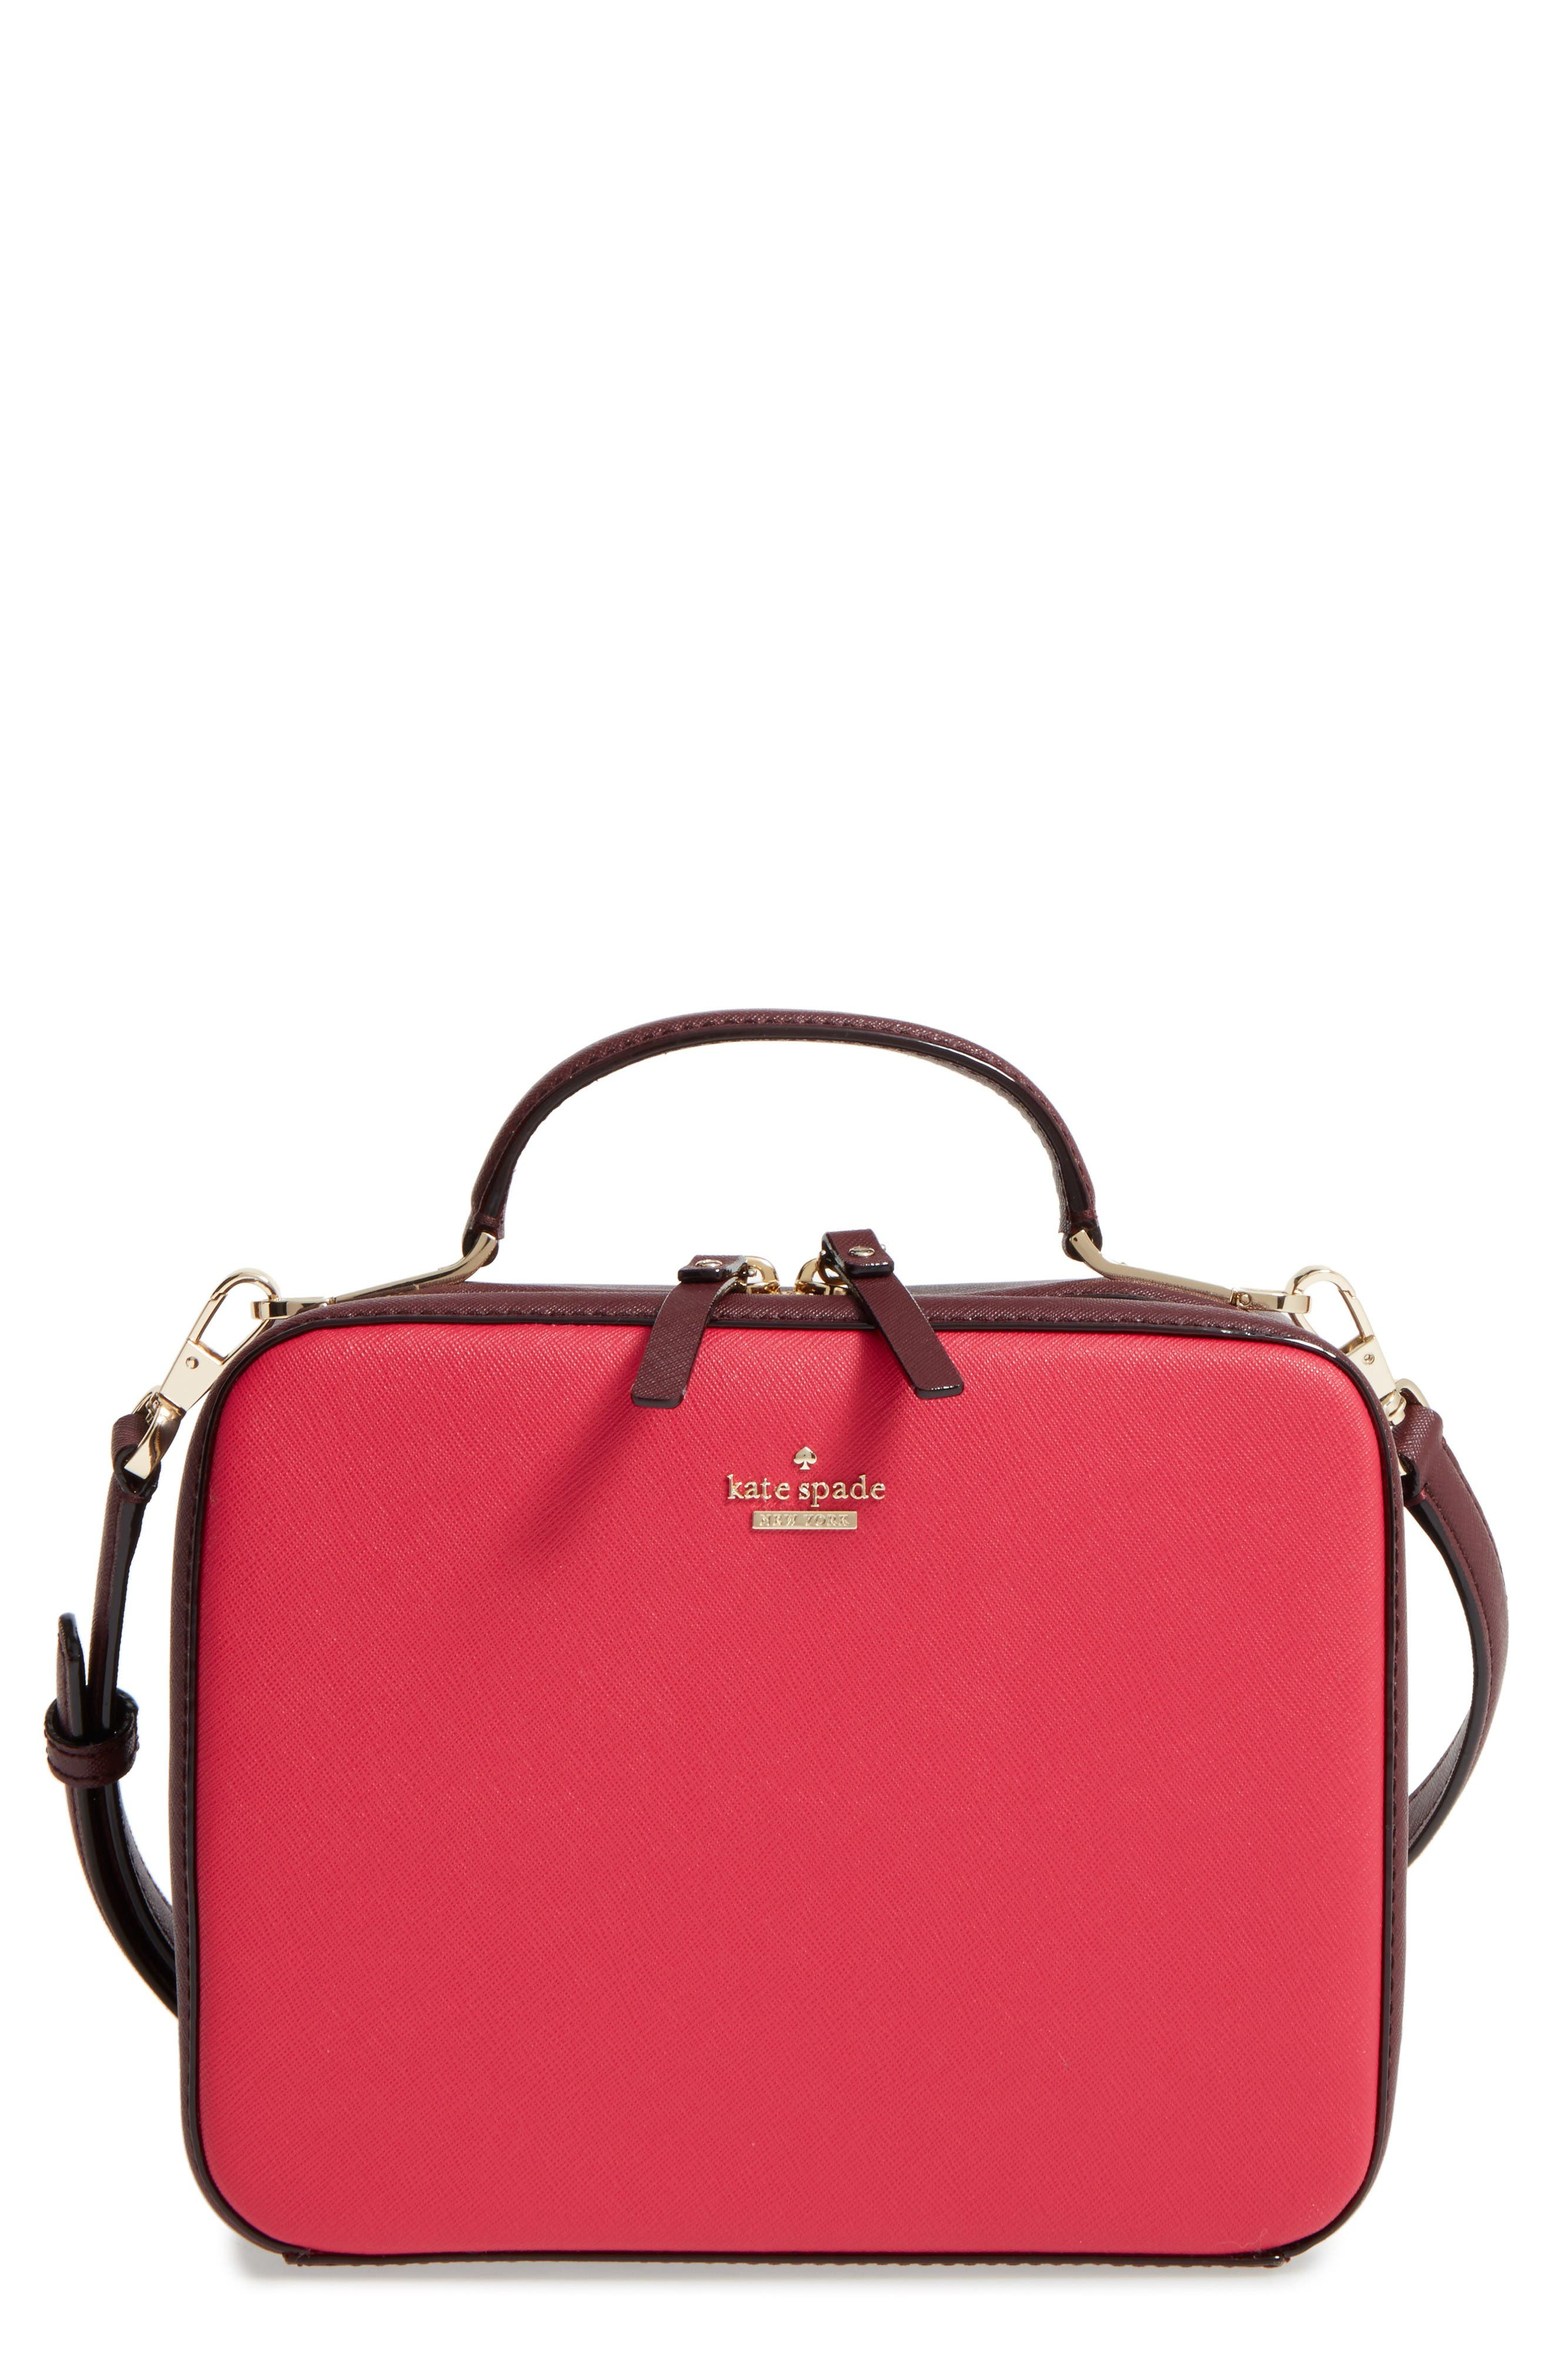 Main Image - kate spade new york cameron street - casie leather top handle satchel